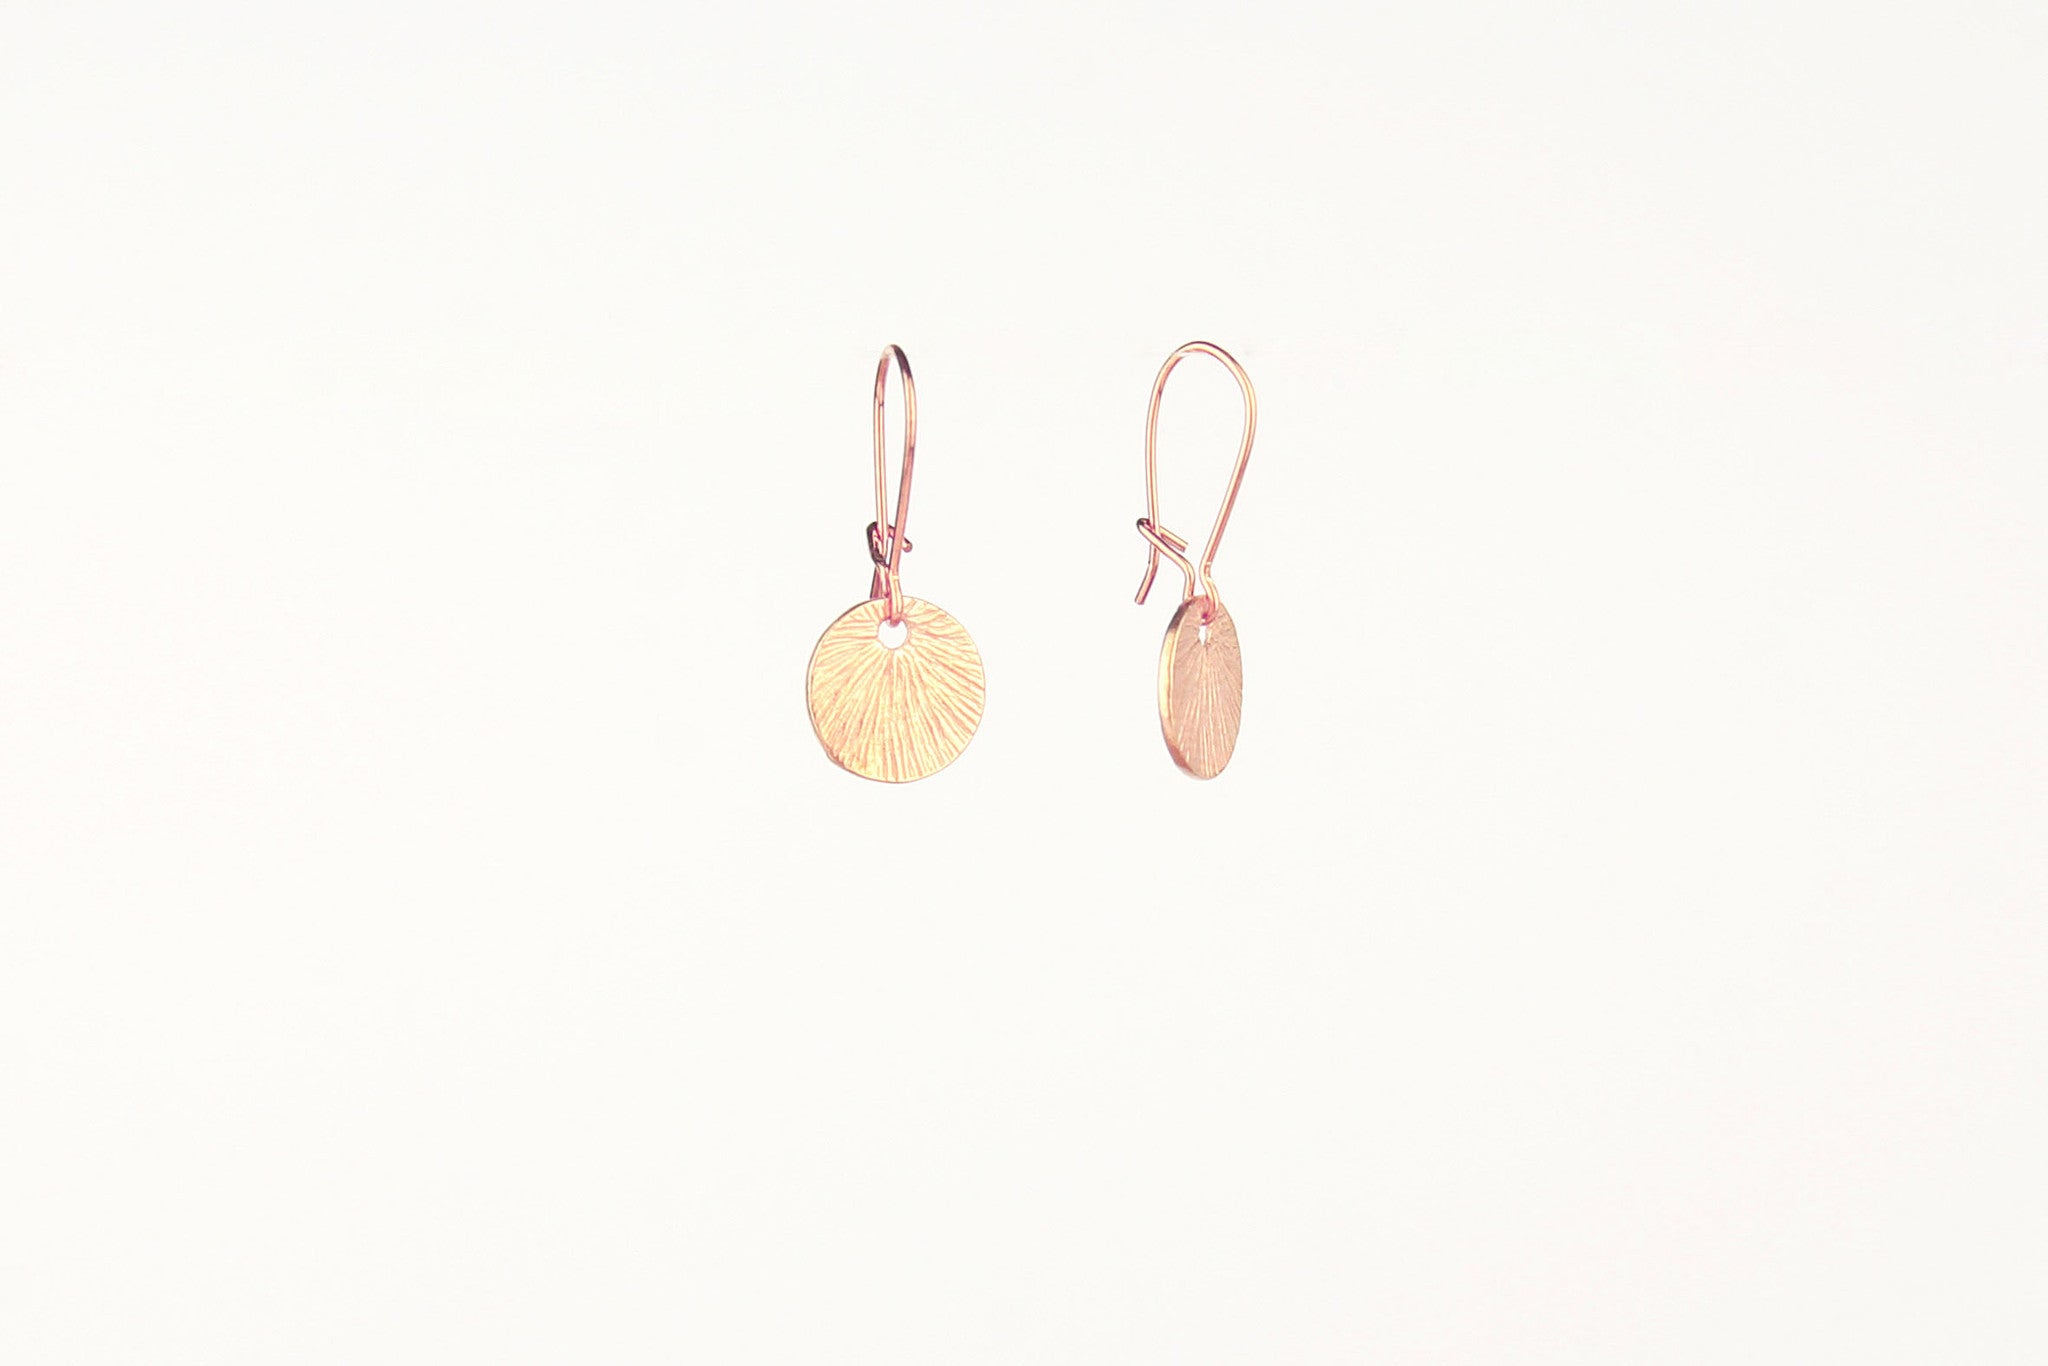 jewelberry ohrringe earrings small shell rose gold plated sterling silver fine jewelry handmade with love fairtrade